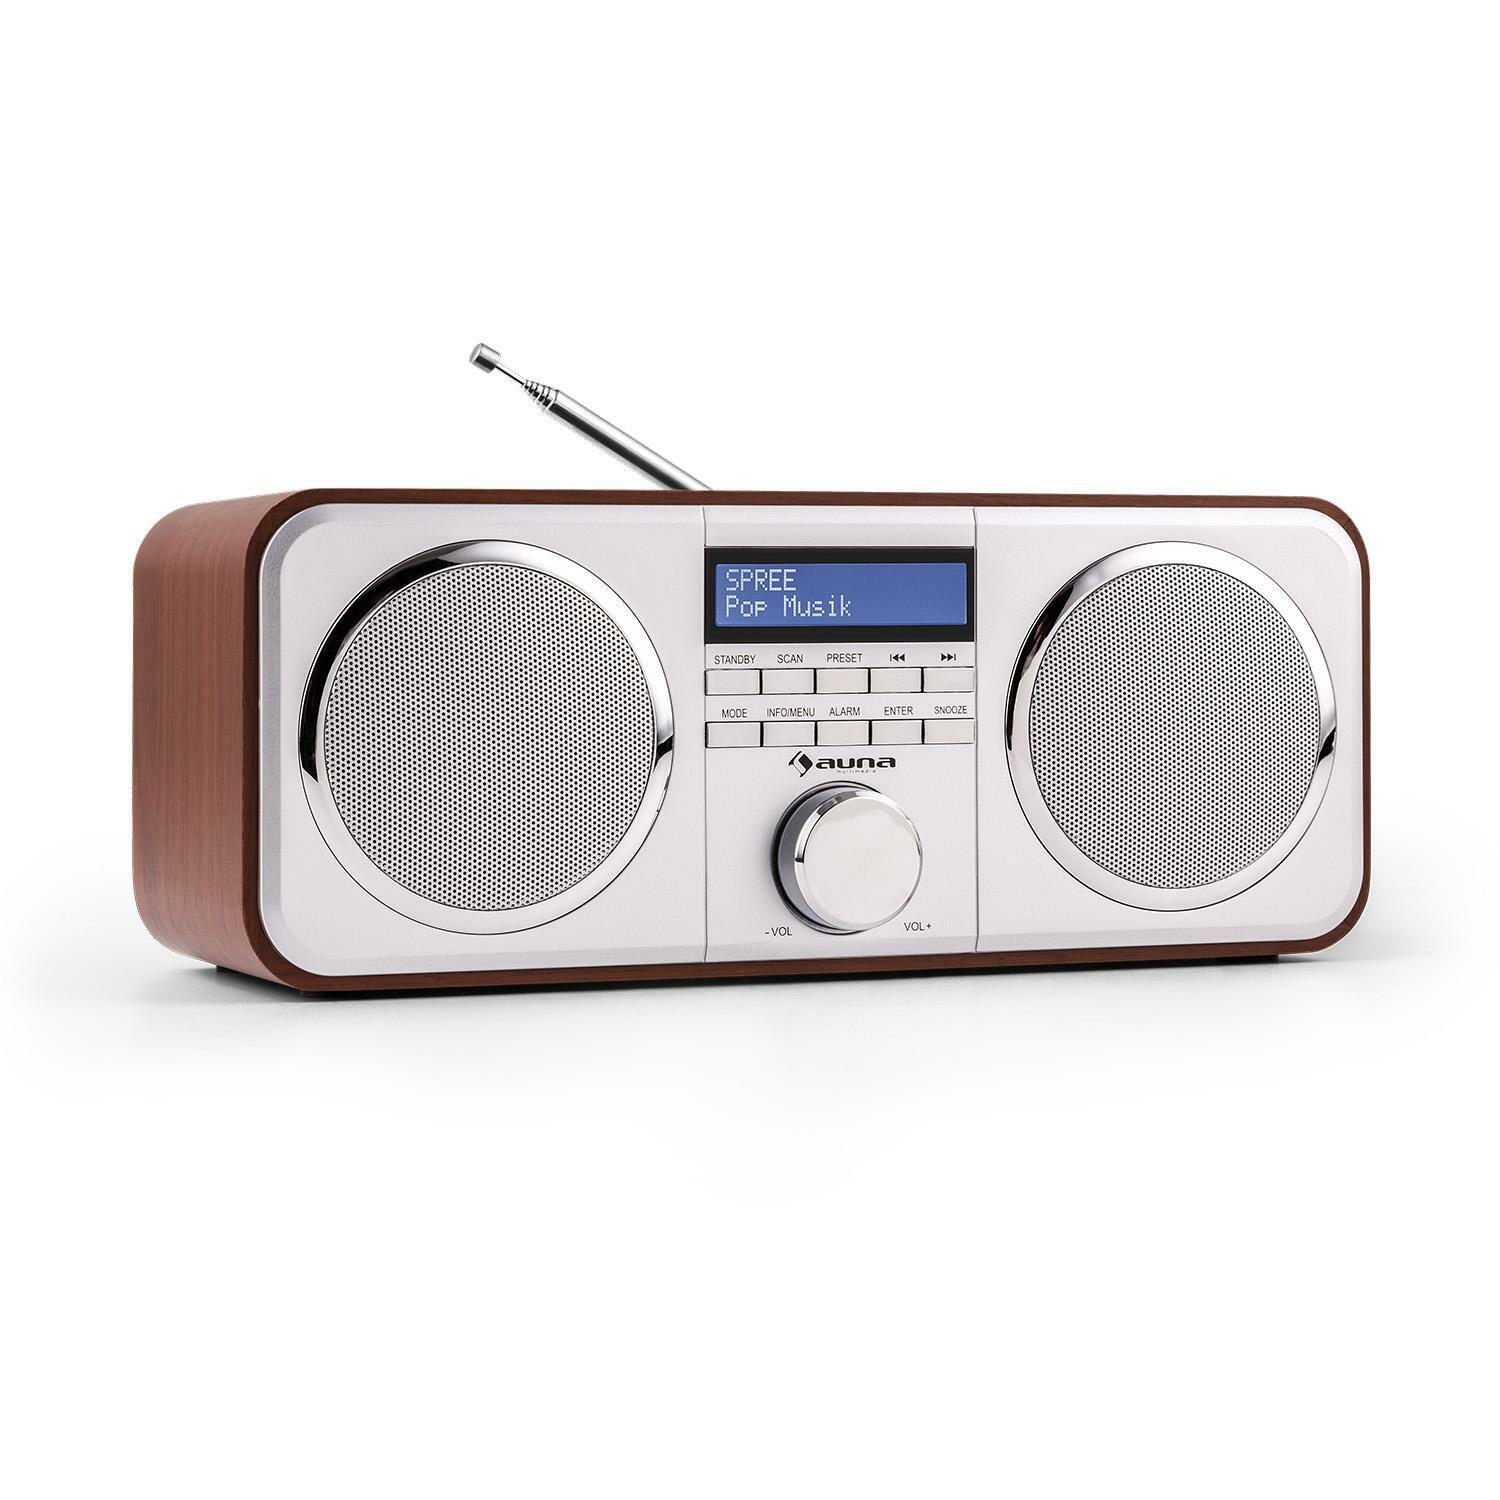 digitalradio dab radio wecker bluetooth stereo lautsprecher ukw tuner aux holz eur 69 99. Black Bedroom Furniture Sets. Home Design Ideas